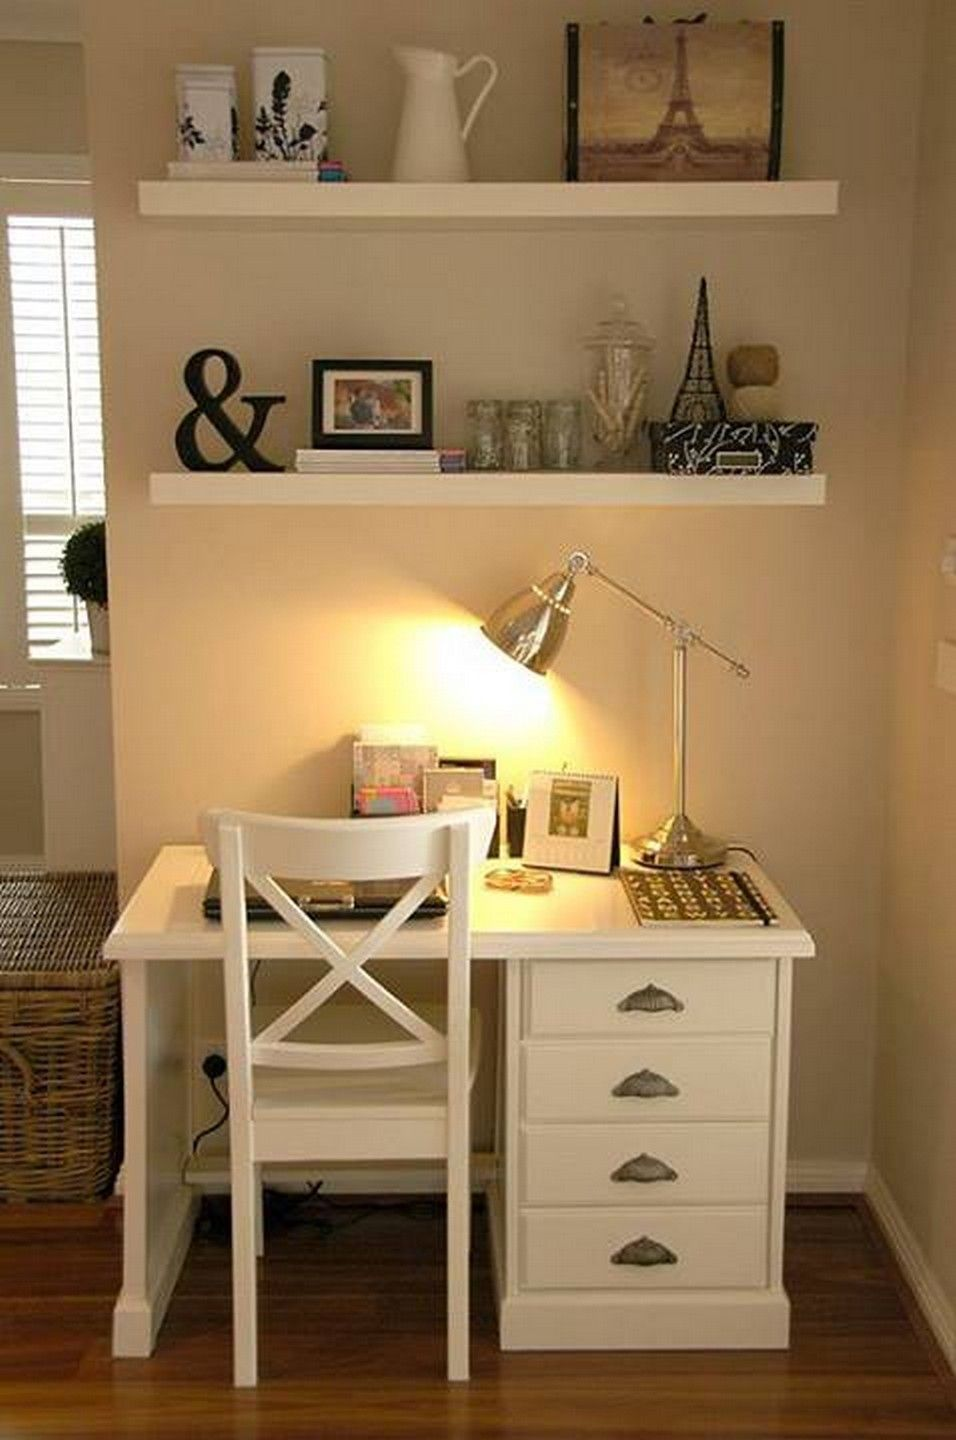 Cool 25 Small Space Ideas For The Bedroom And Home Office  Https://homedecort.com/2017/04/small Space Ideas Bedroom Home Office/